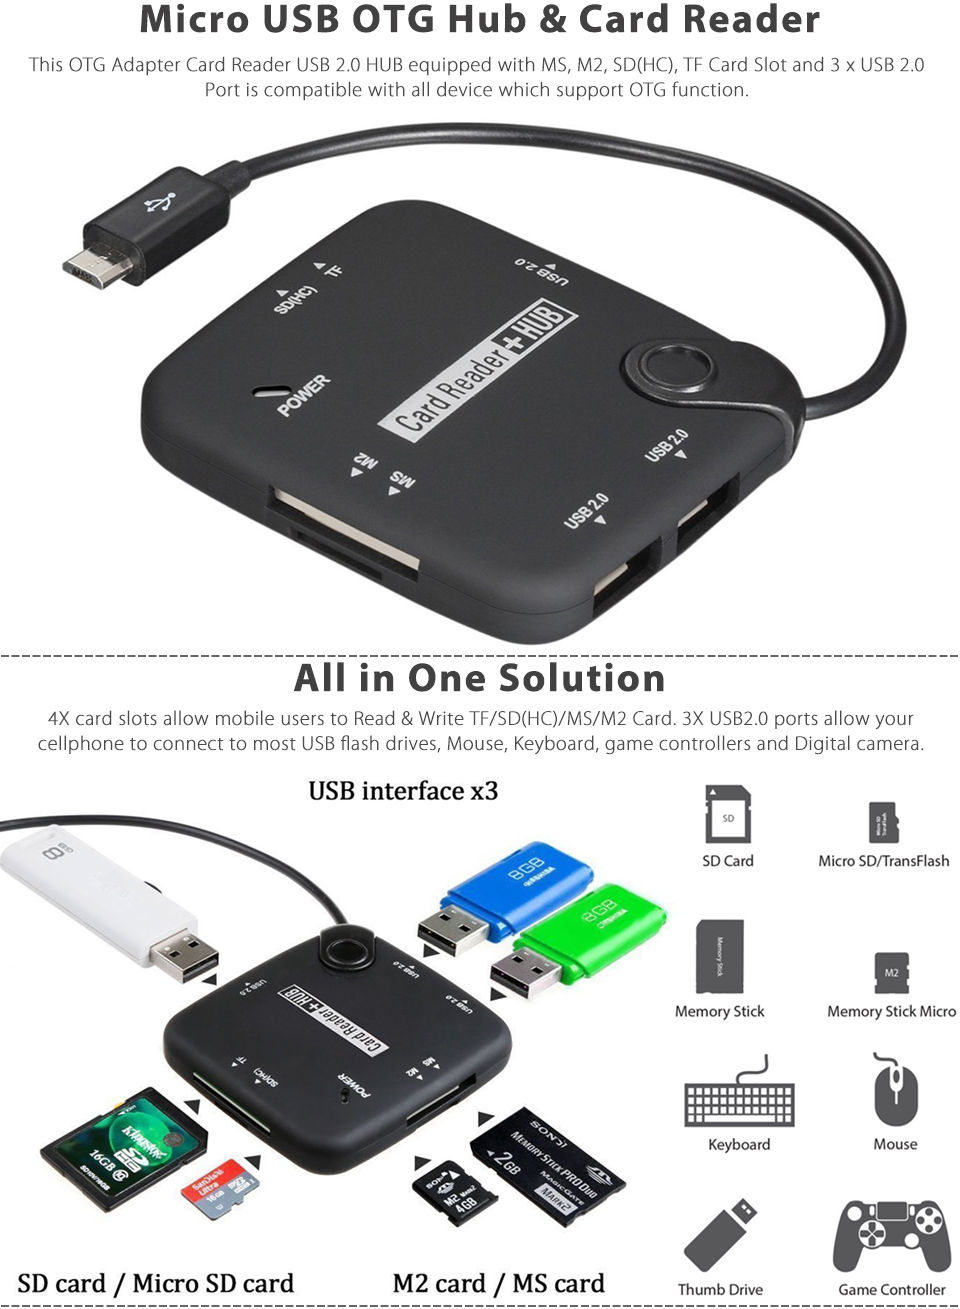 Micro USB Host Adapter OTG Cable Hub SDHC SD TF MS M2 Card Reader for Smartphone | eBay